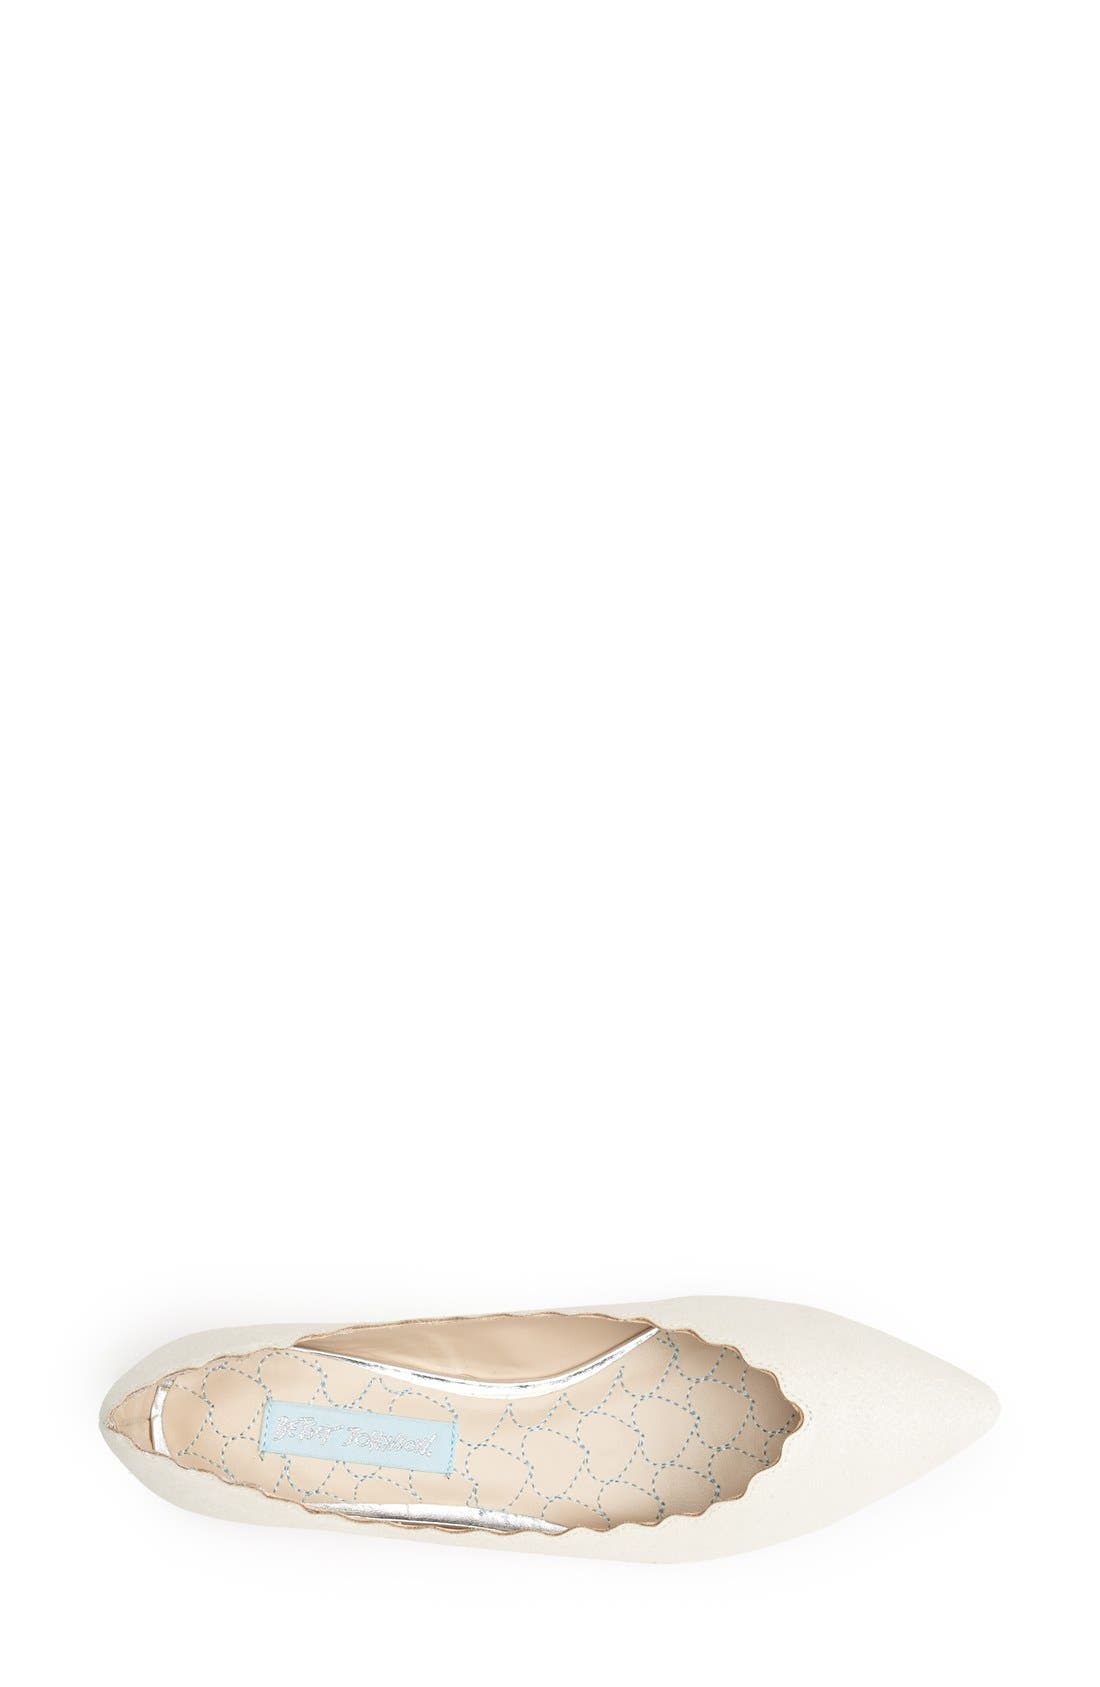 Alternate Image 3  - Blue by Betsey Johnson 'Cake' Flat (Women)